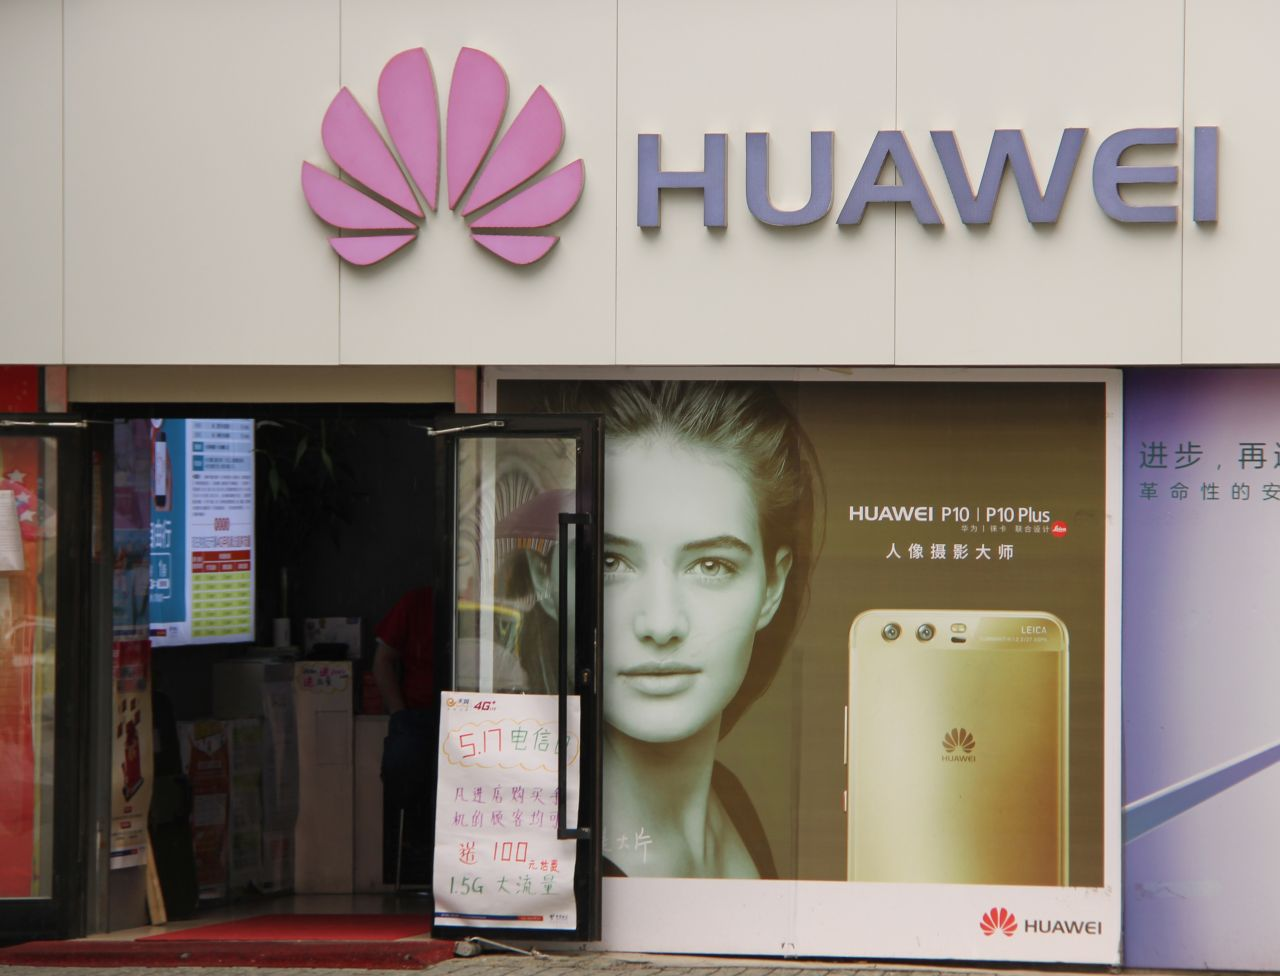 China voices concerns about US charges against Huawei